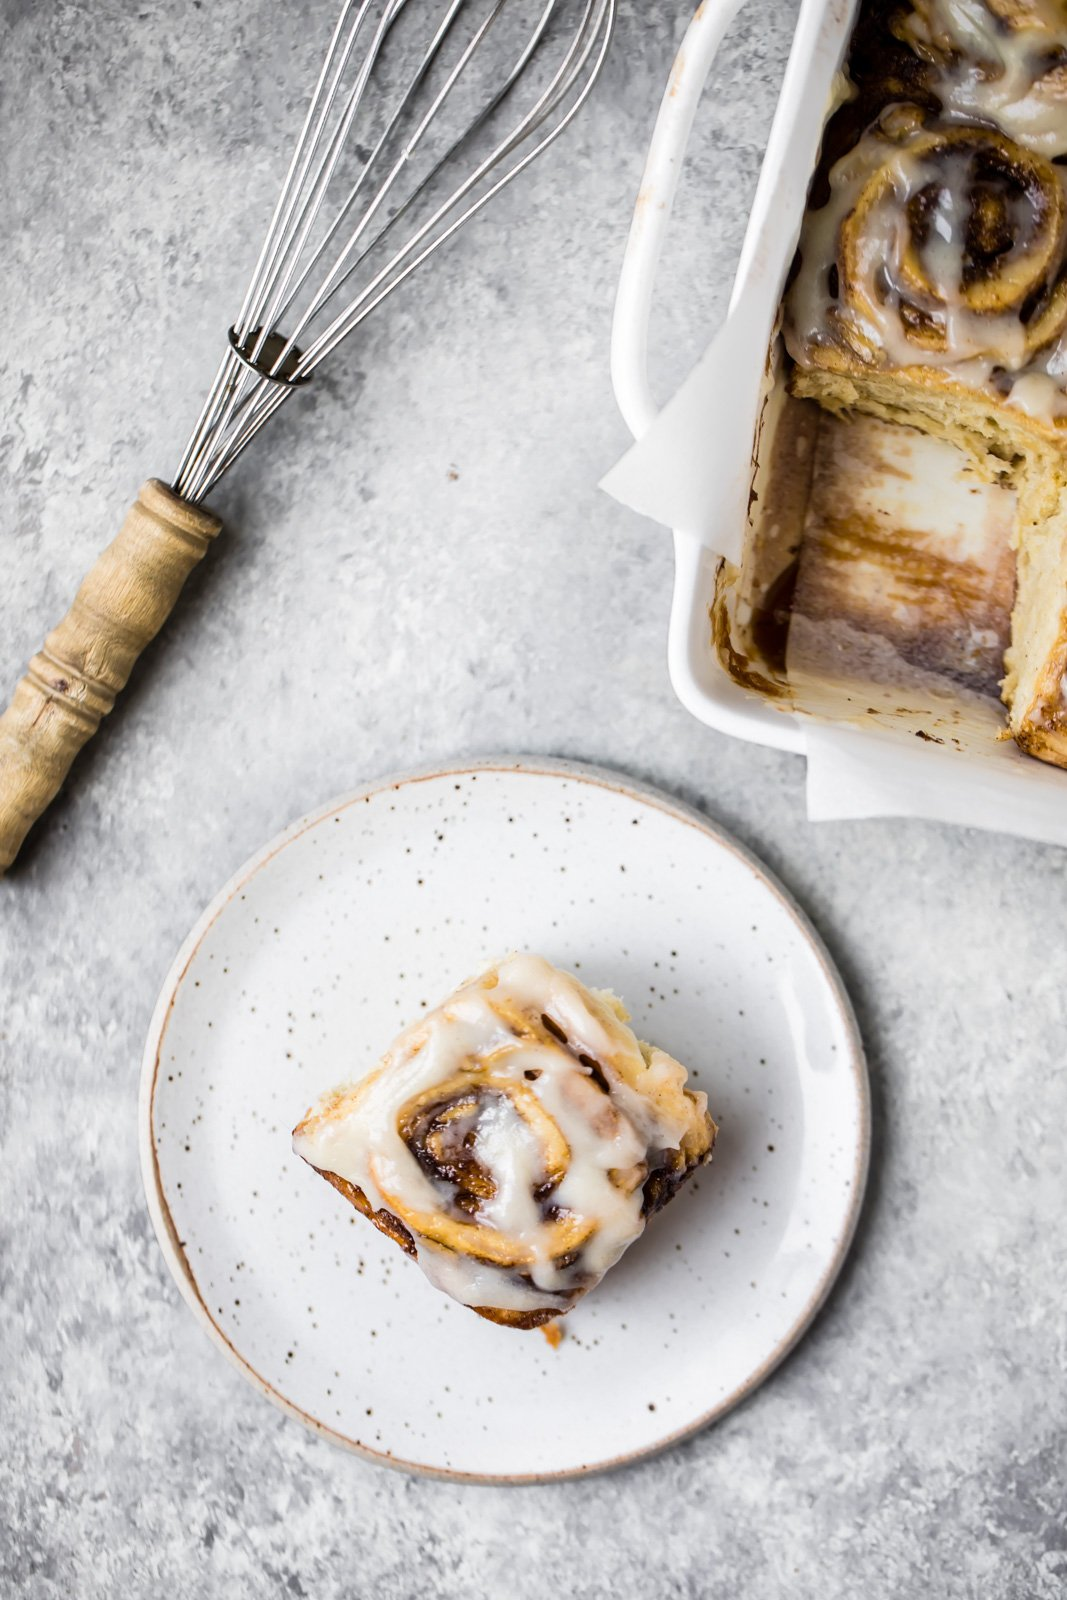 Meet the world's best vegan cinnamon rolls: vegan banana bread cinnamon rolls! A cross between a cinnamon roll and banana bread, these fluffy, soft cinnamon rolls are homemade and make a delicious brunch or treat!